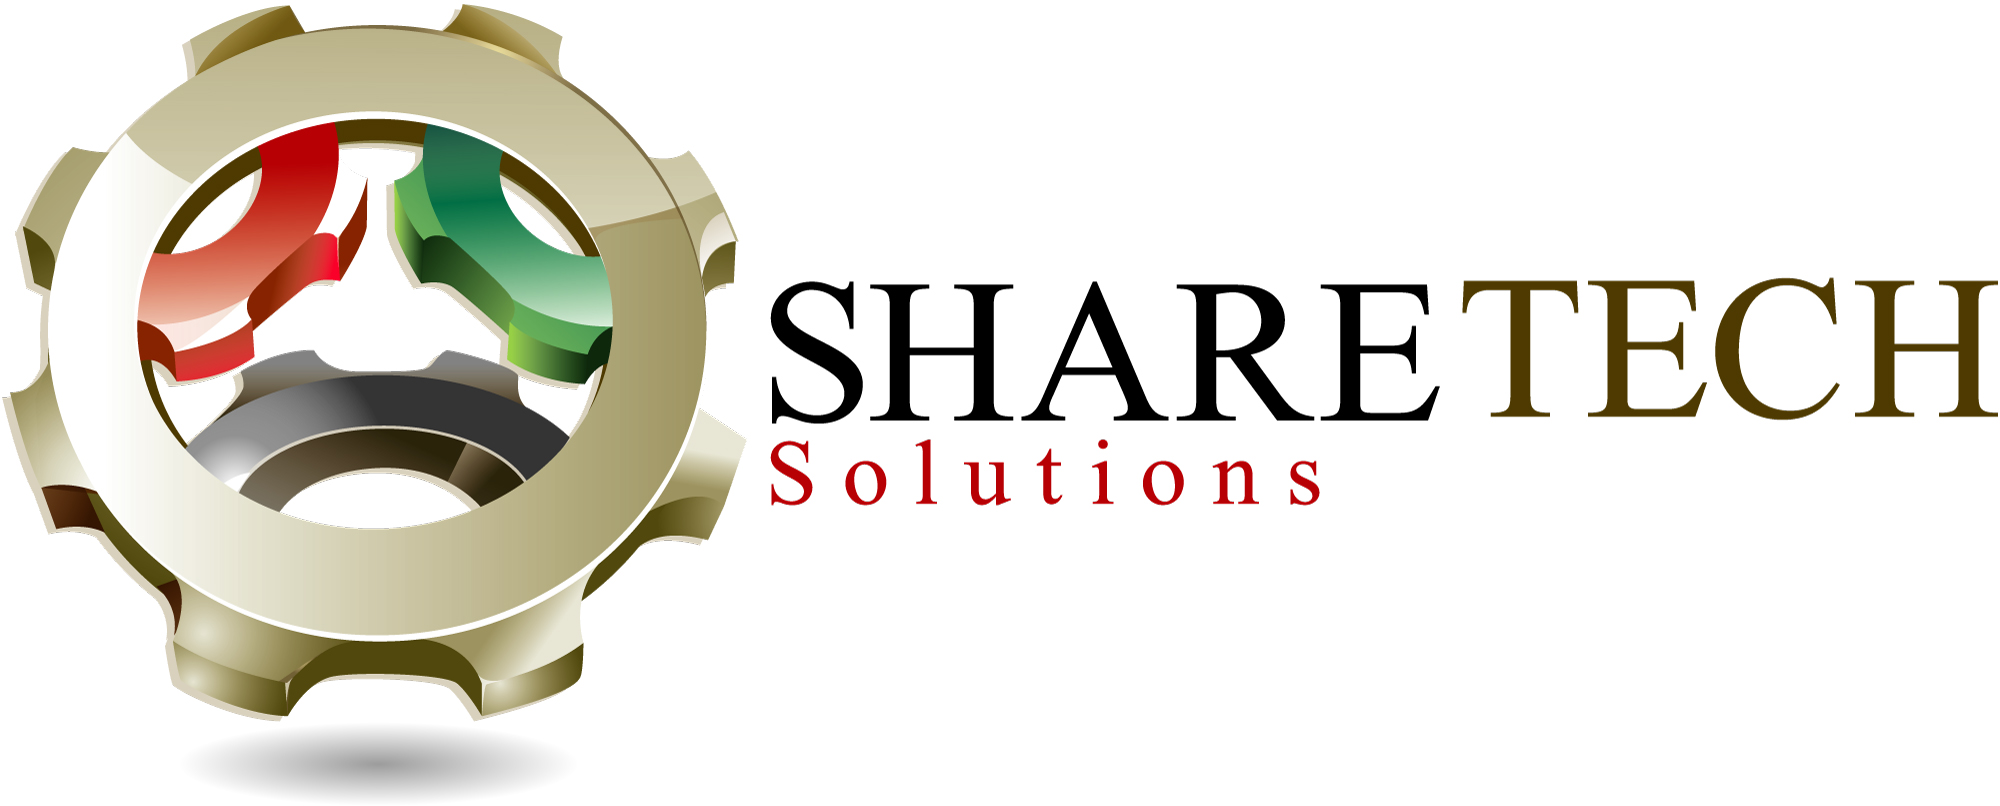 Share Tech Solutions